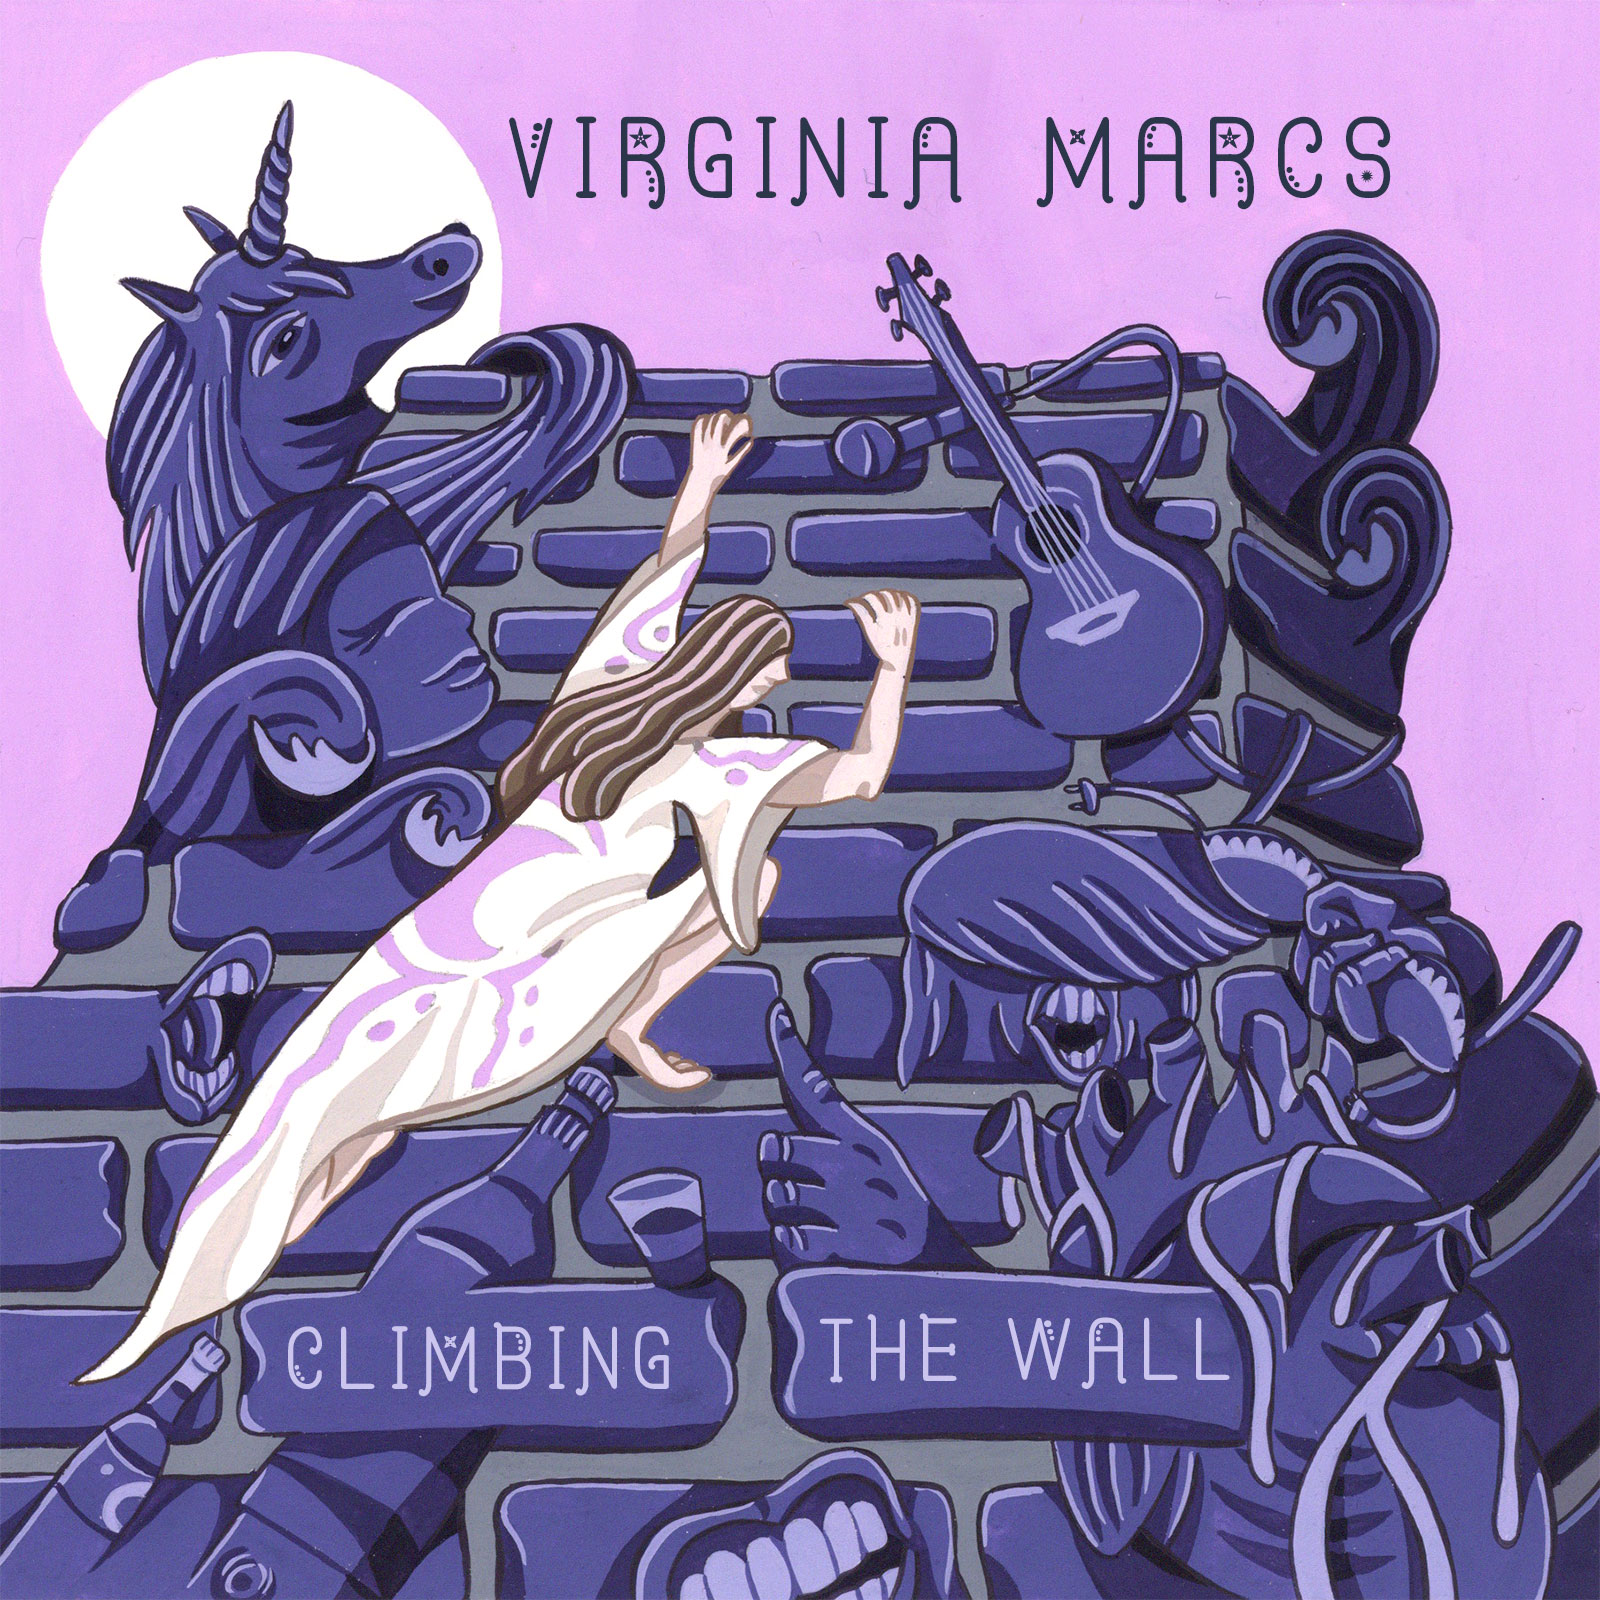 Album art for Virginia Marcs